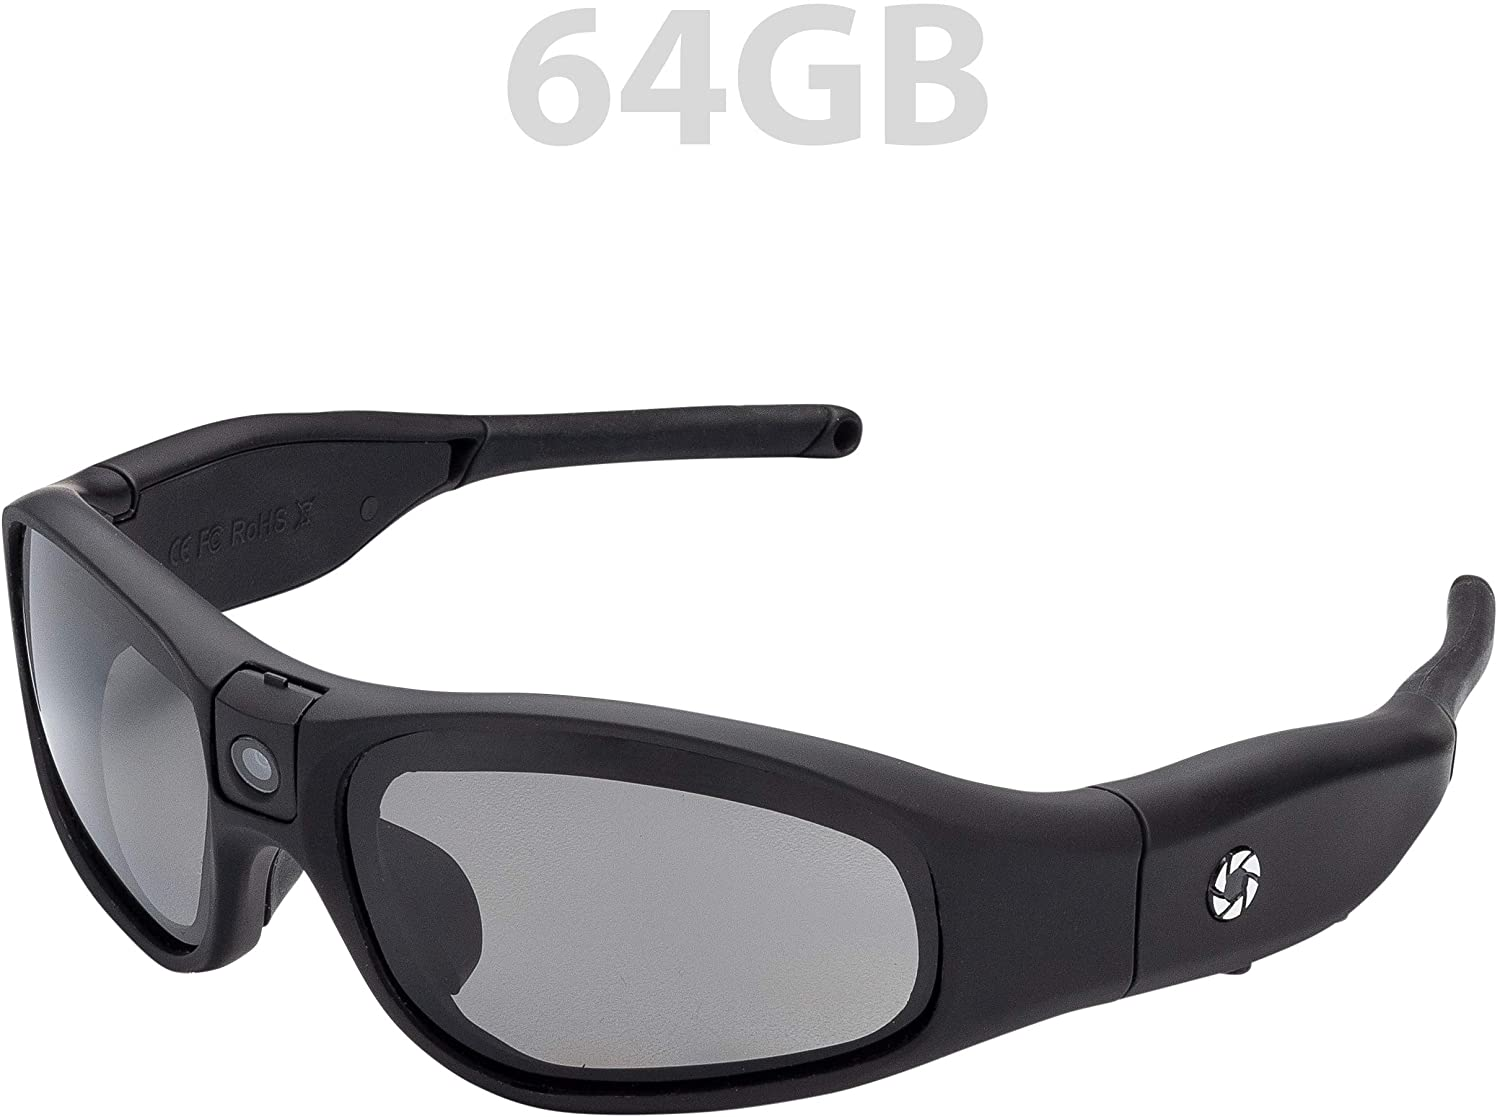 4. VUE Rincon 1080P HD Camera Glasses Video Recording Sport